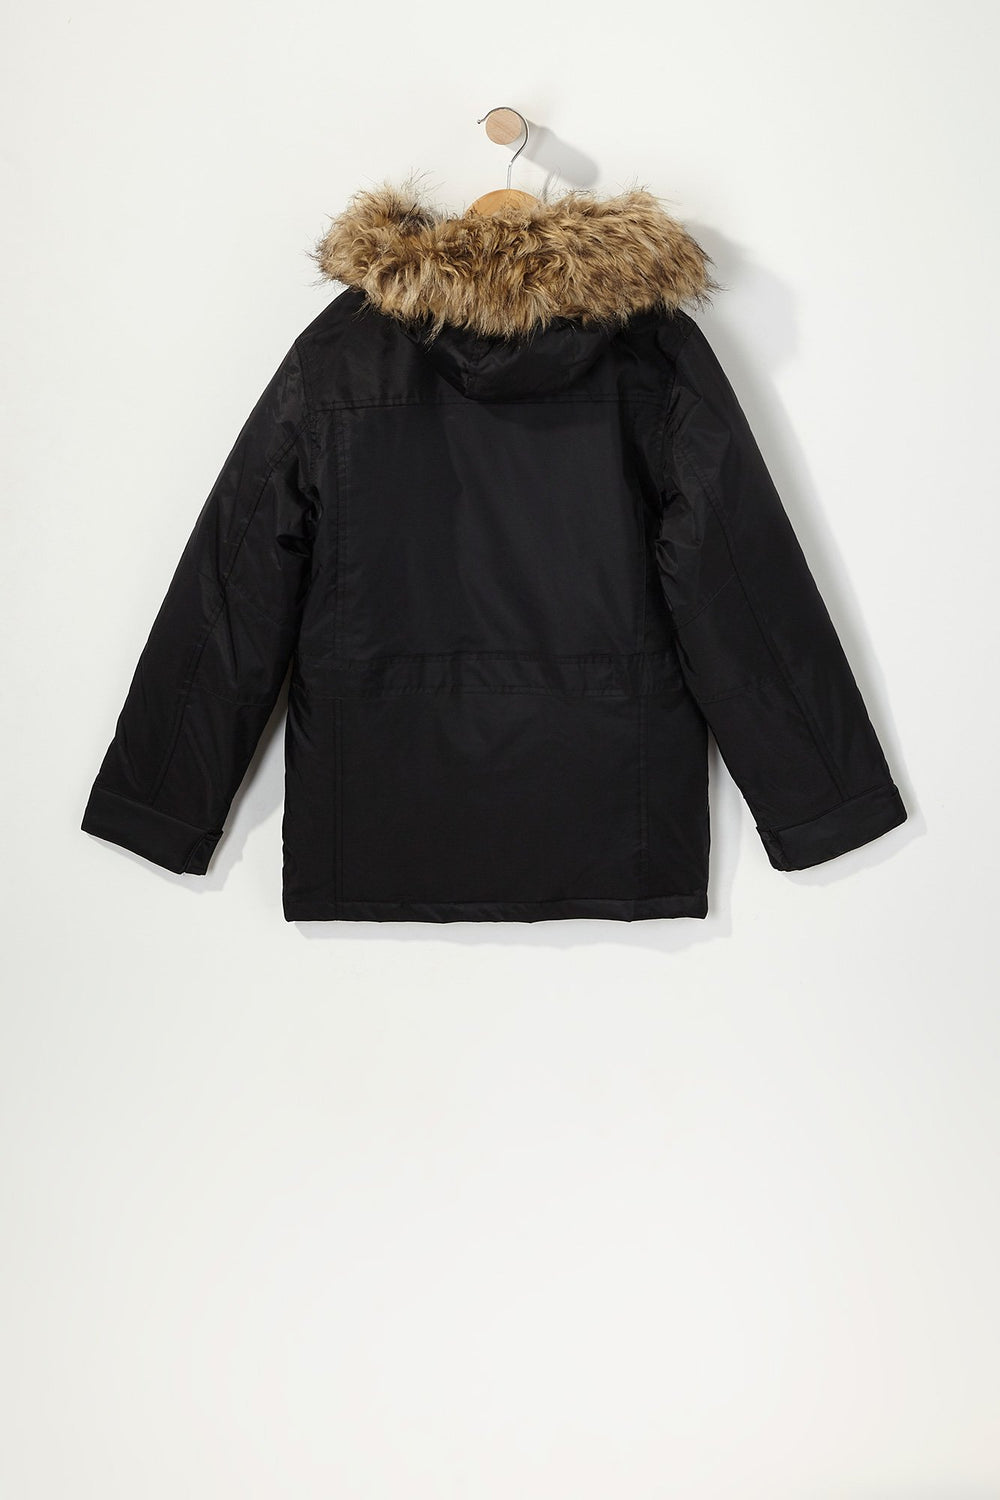 Storm Mountain Boys Arctic Series Utility Parka Black